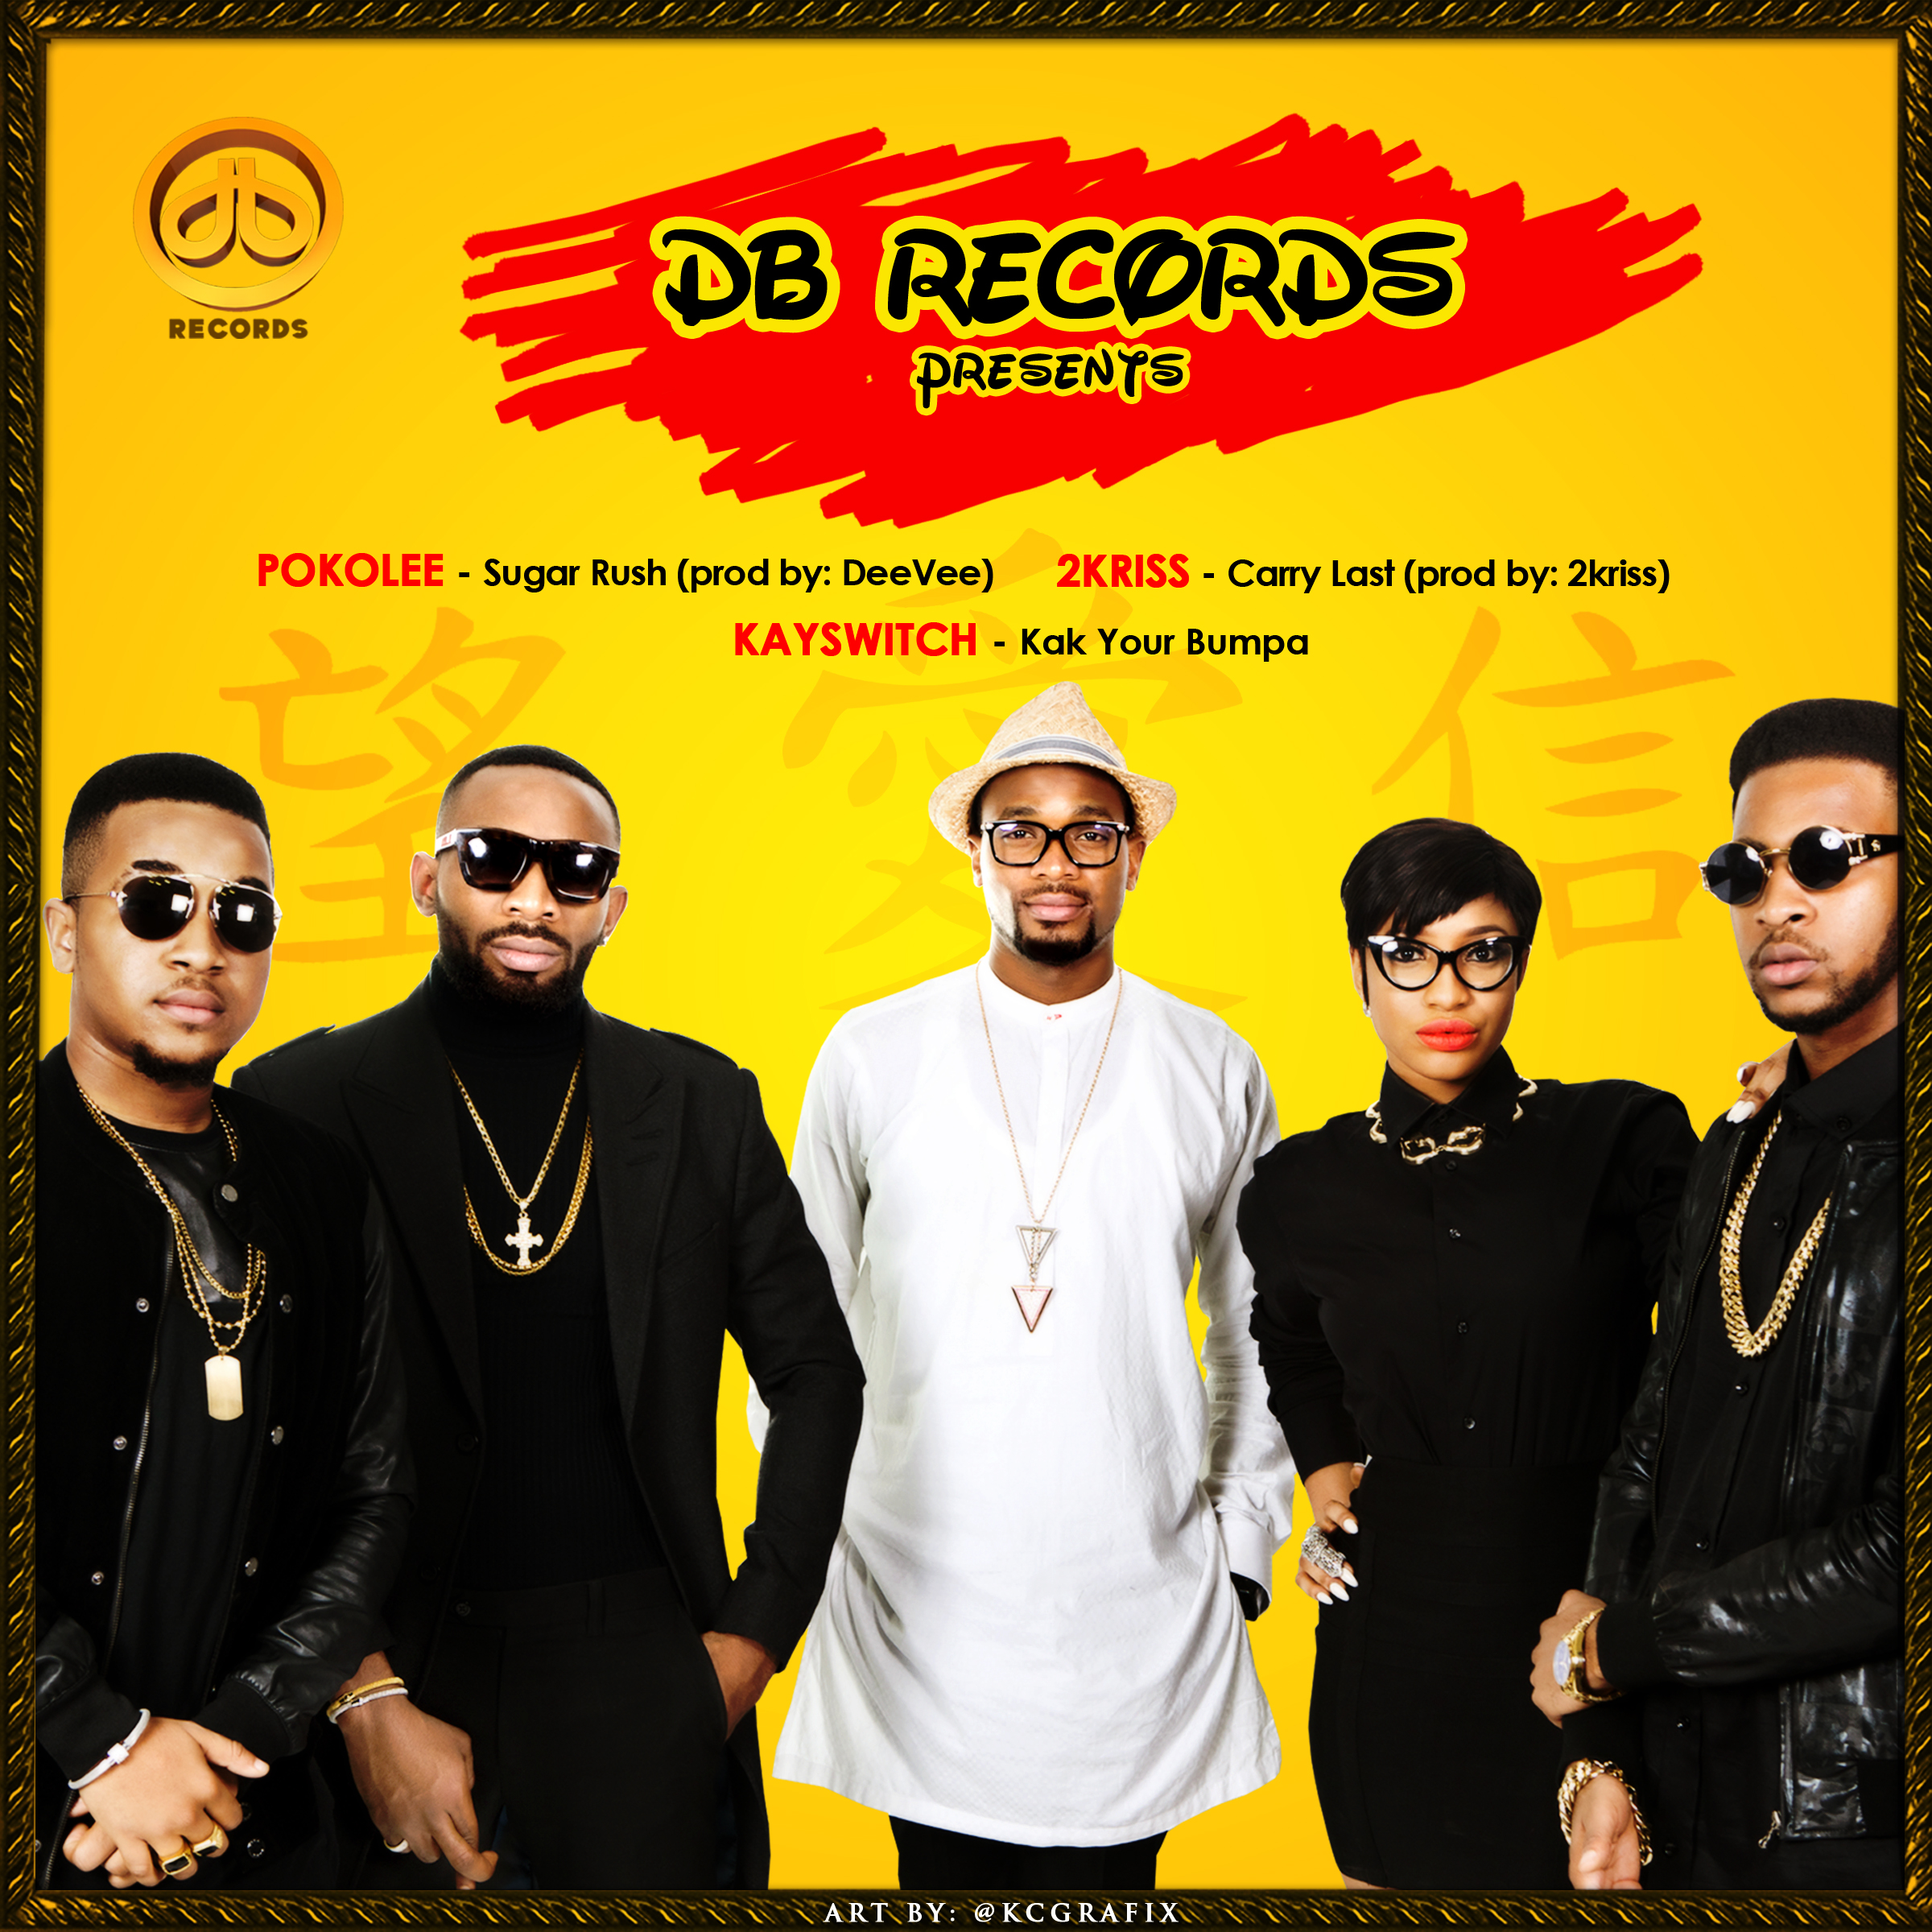 DB-Records-ep-big-online-size